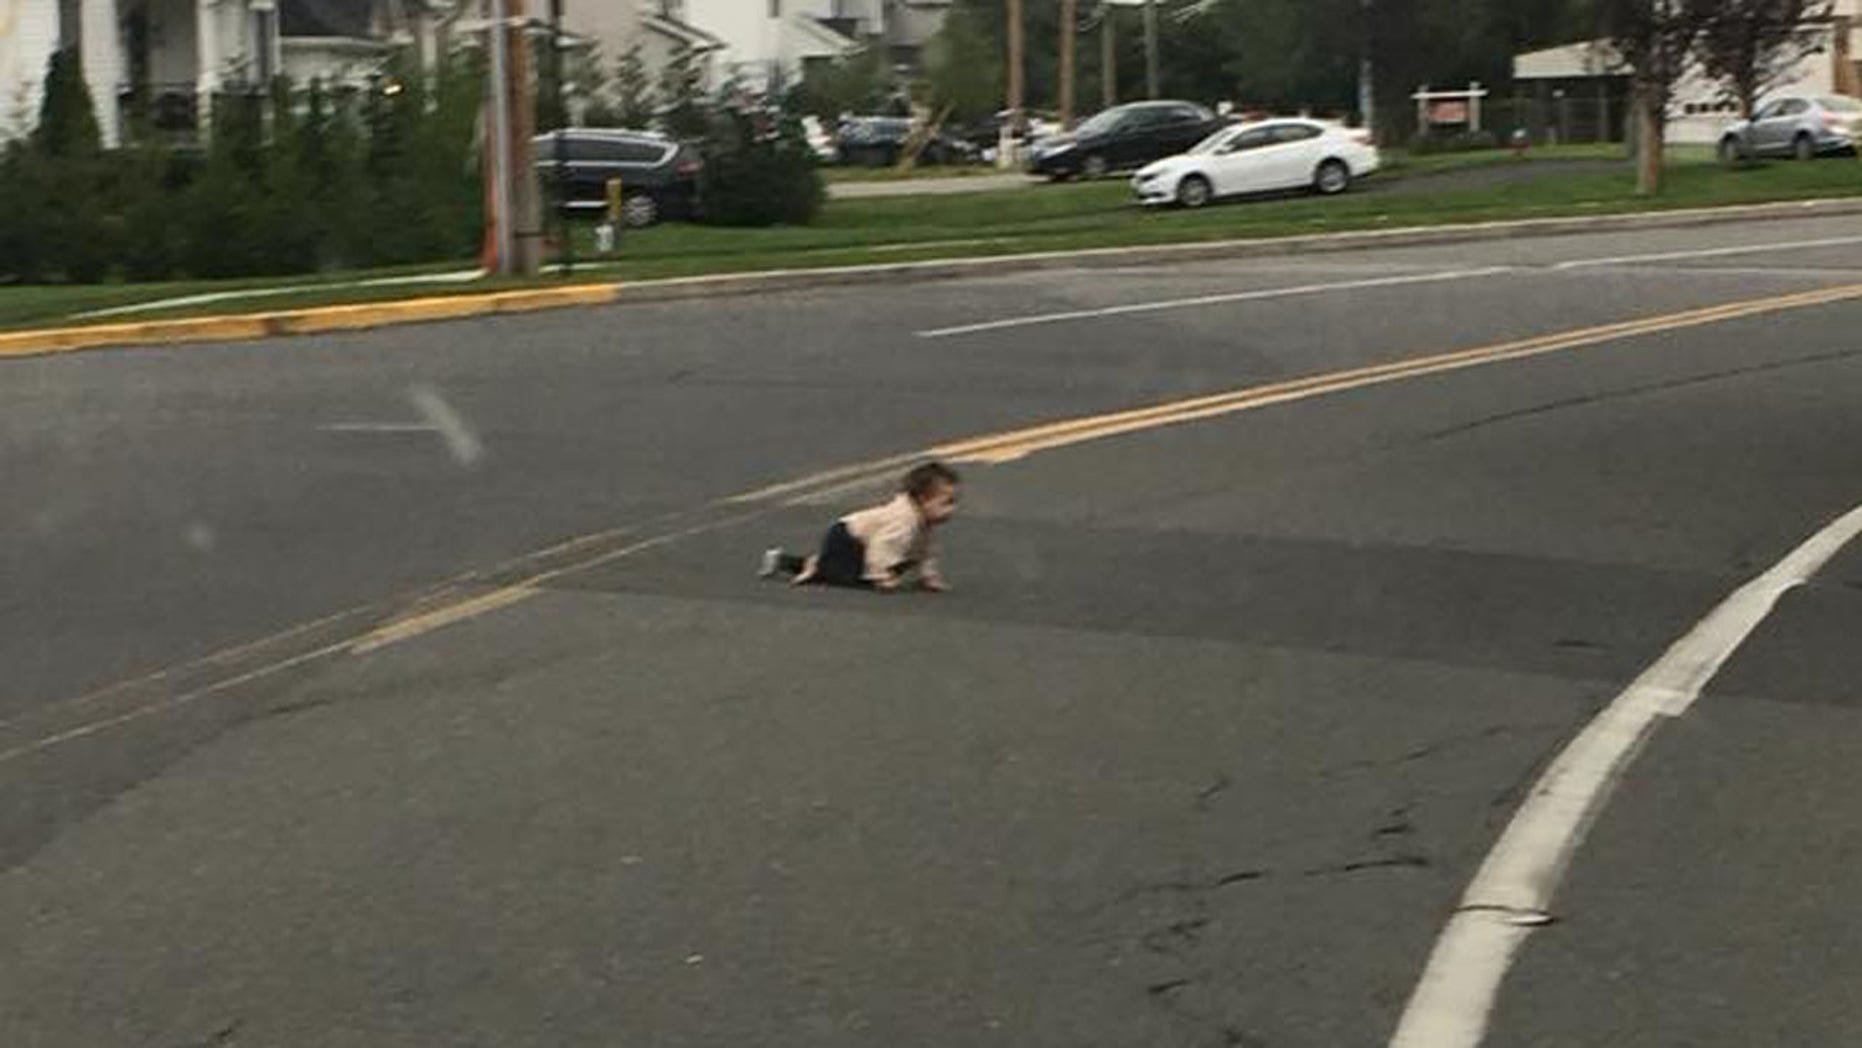 A baby girl was found crawling across a road in New Jersey on Saturday.